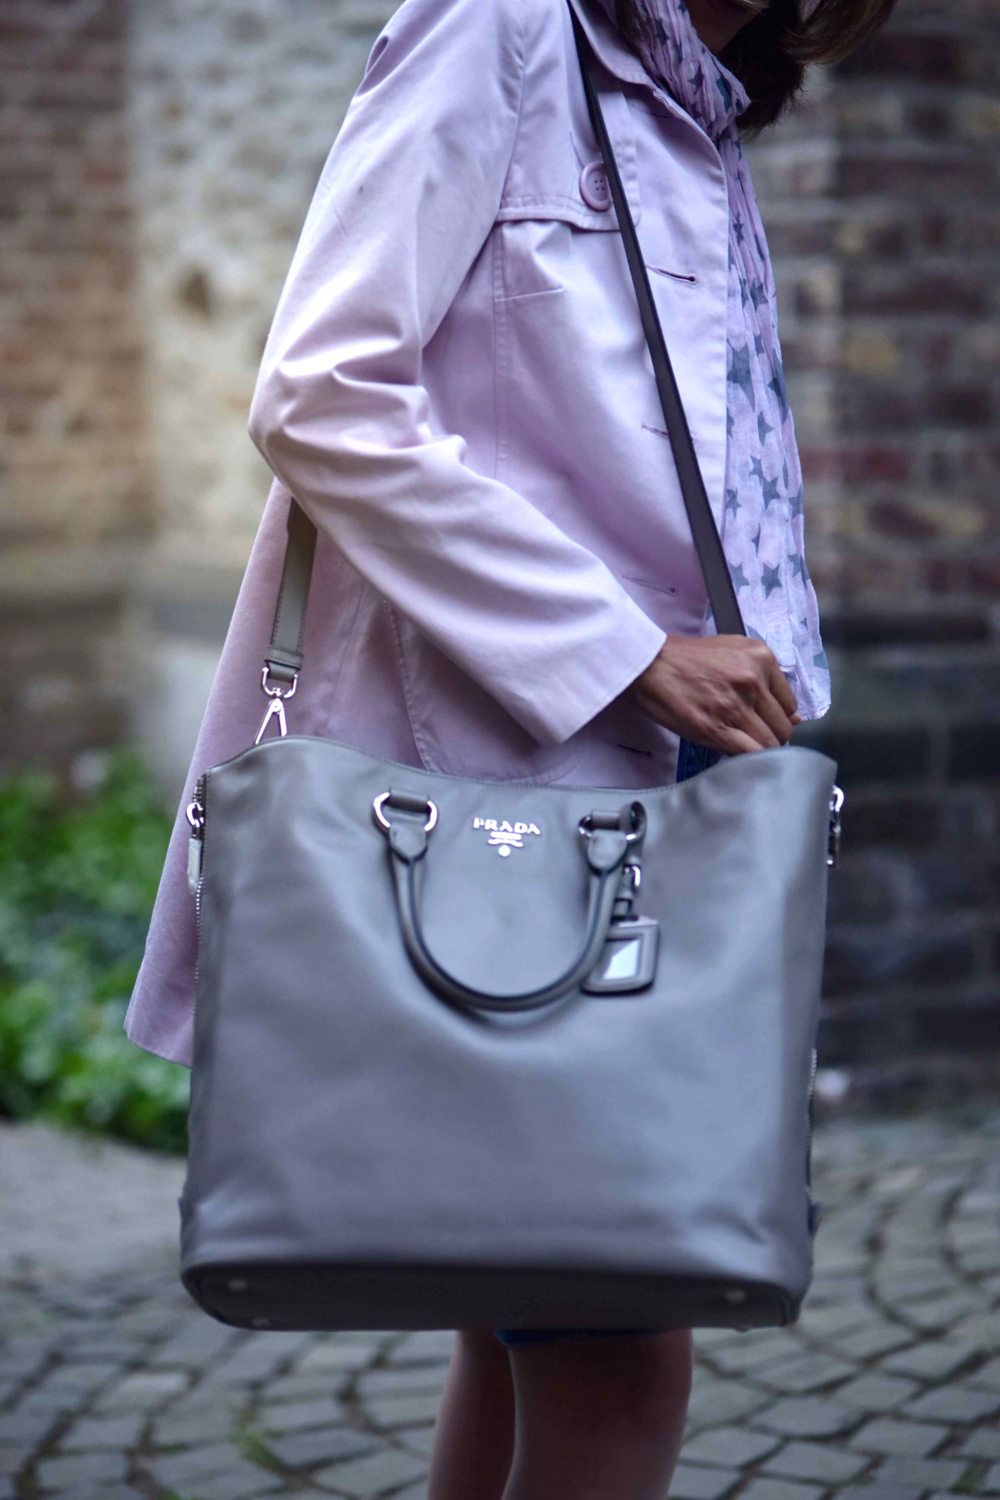 Pink trench, Ralph Lauren white tee, star scarf, Prada tote, Gucci sunglasses. Photo: Nicola Nolting, Image©sourcingstyle.com